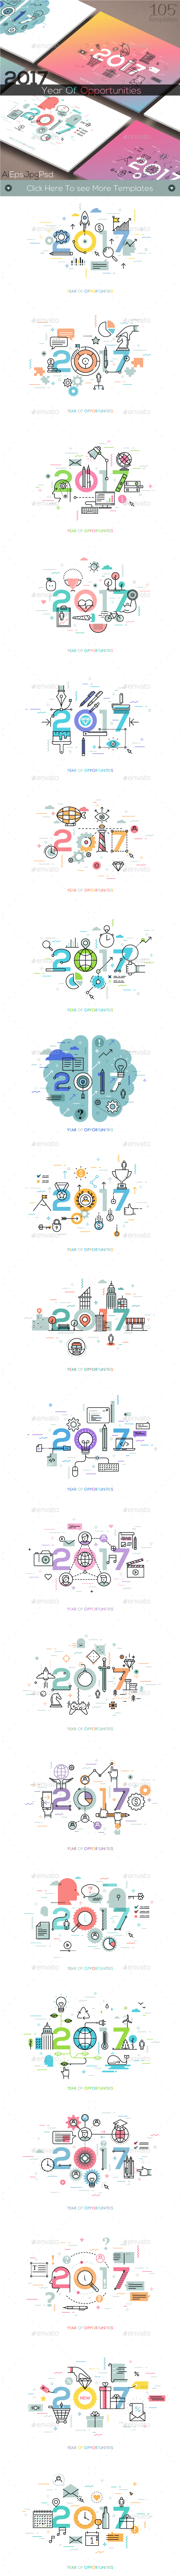 2017 Year Of Opportunities (105 Templates) - Web Elements Vectors